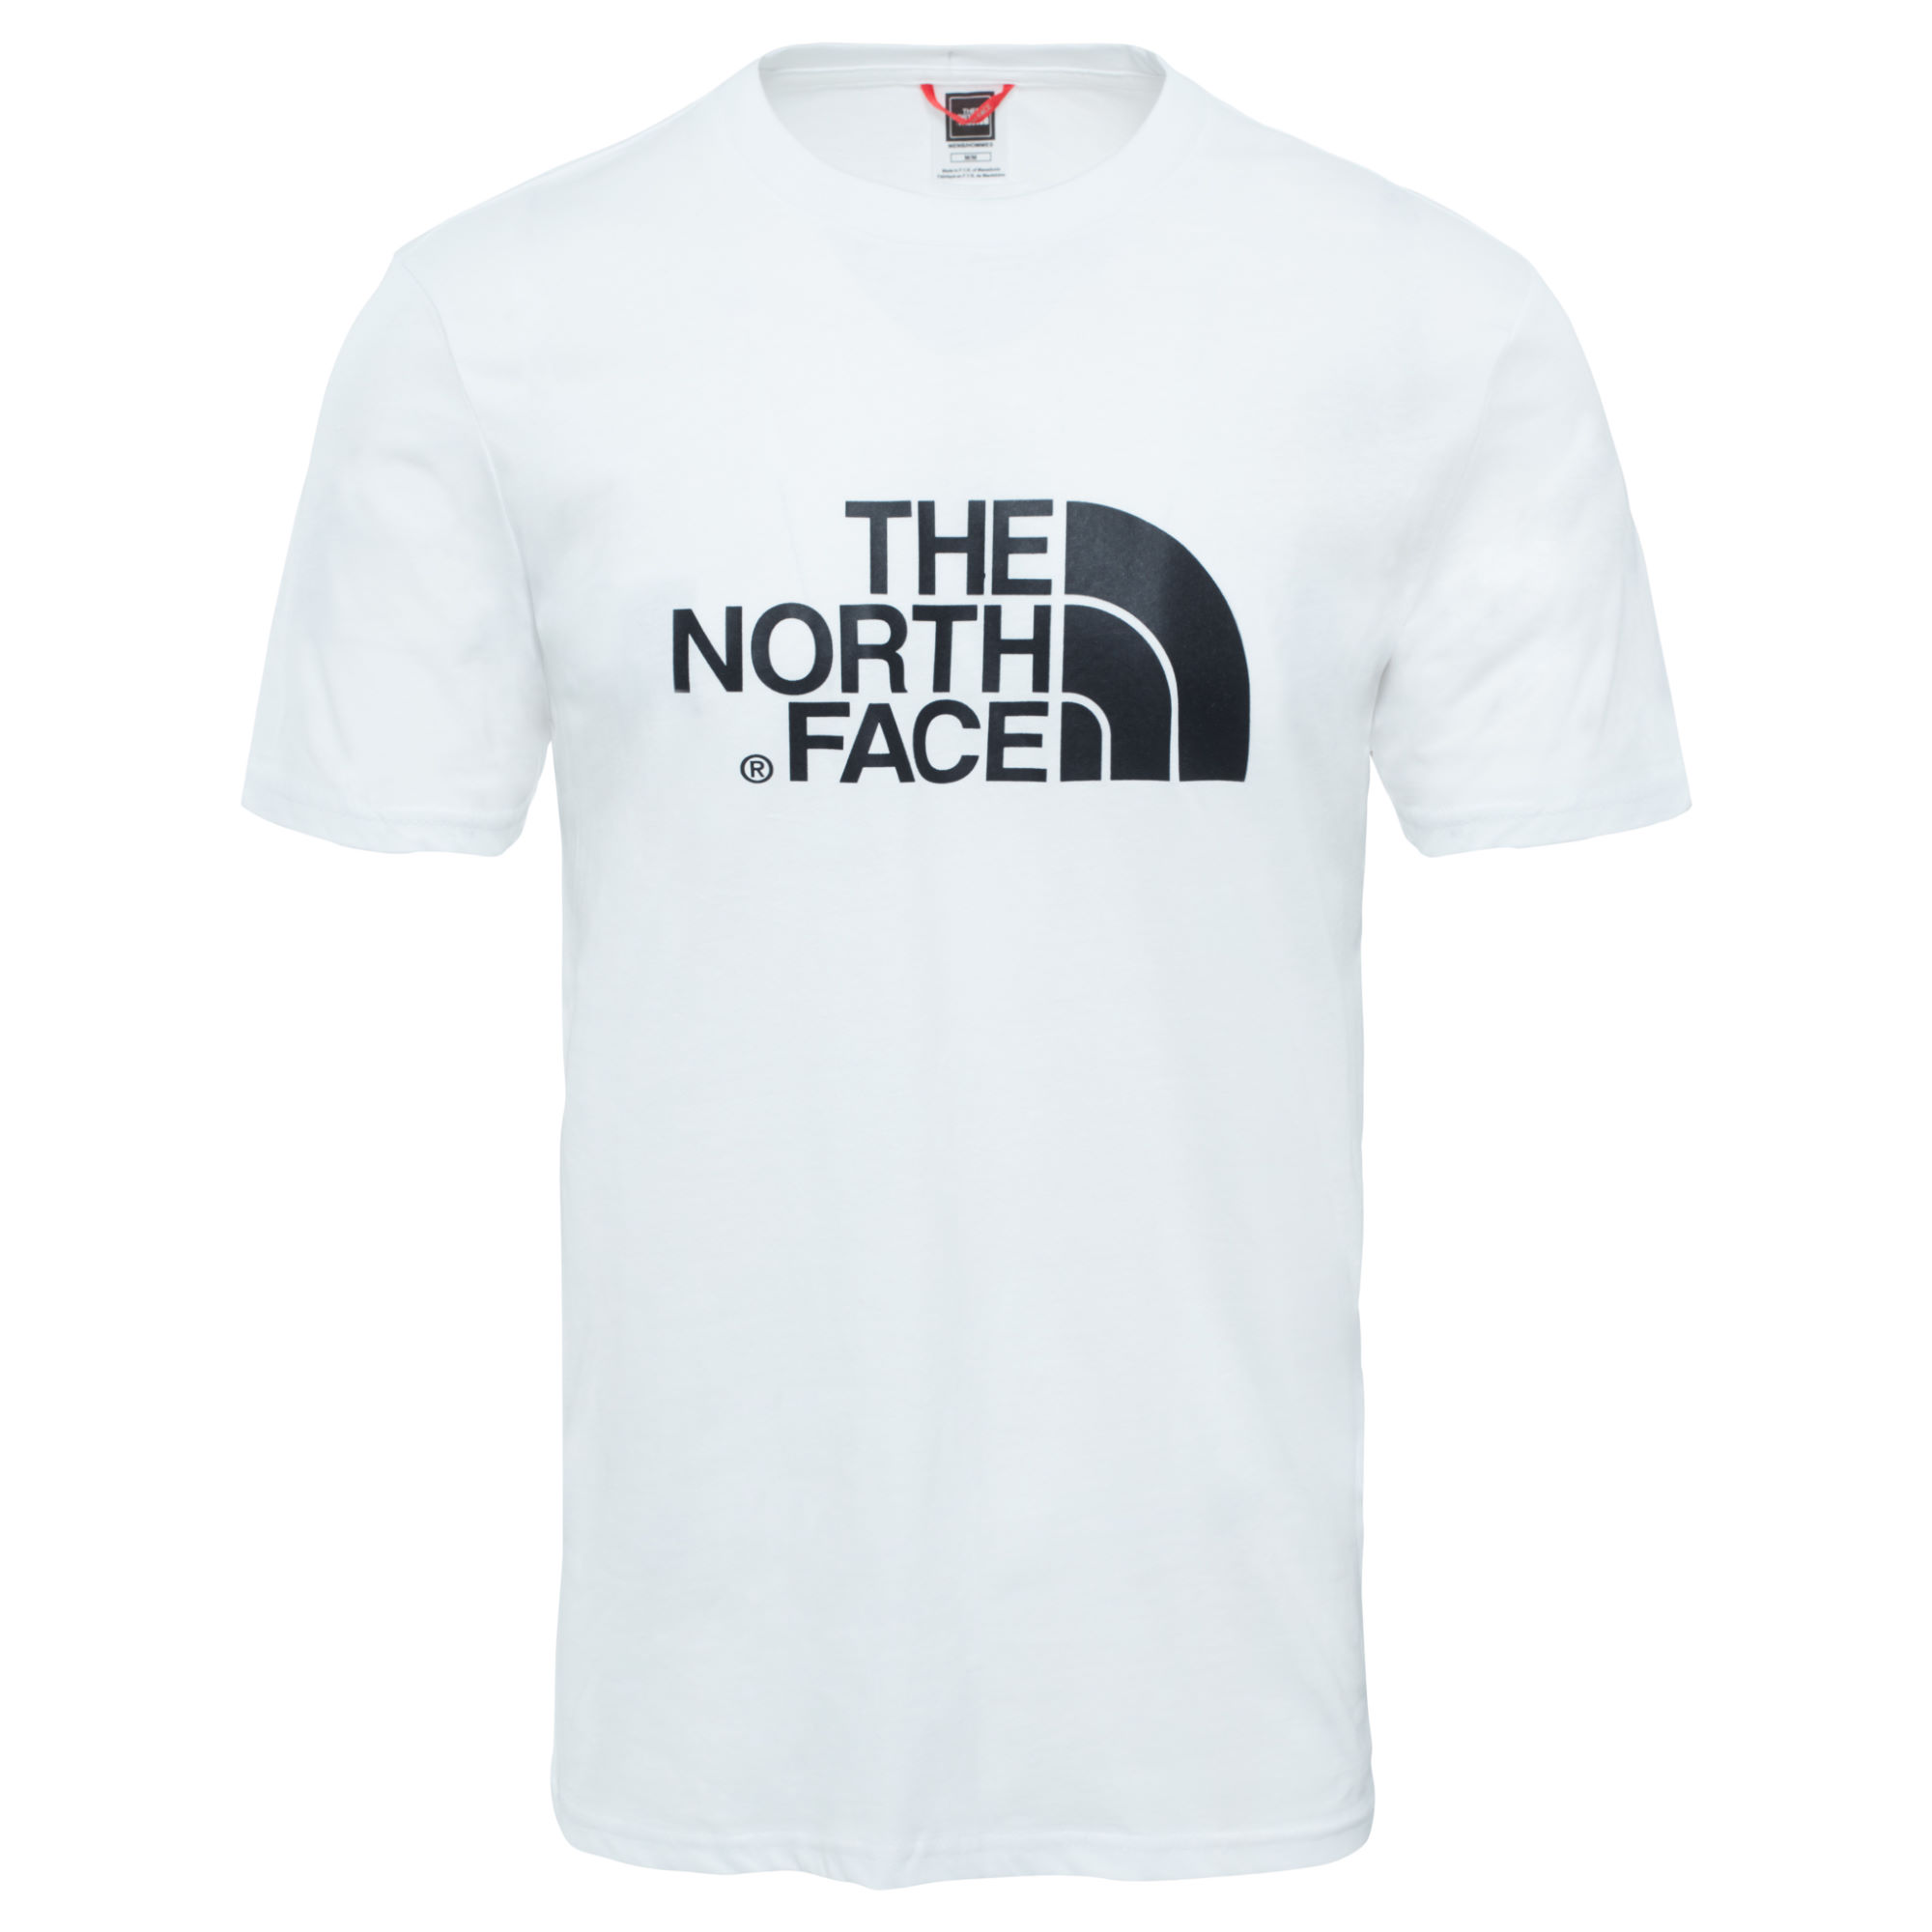 Mens The North Face Easy Tee Shirt White S/M/L